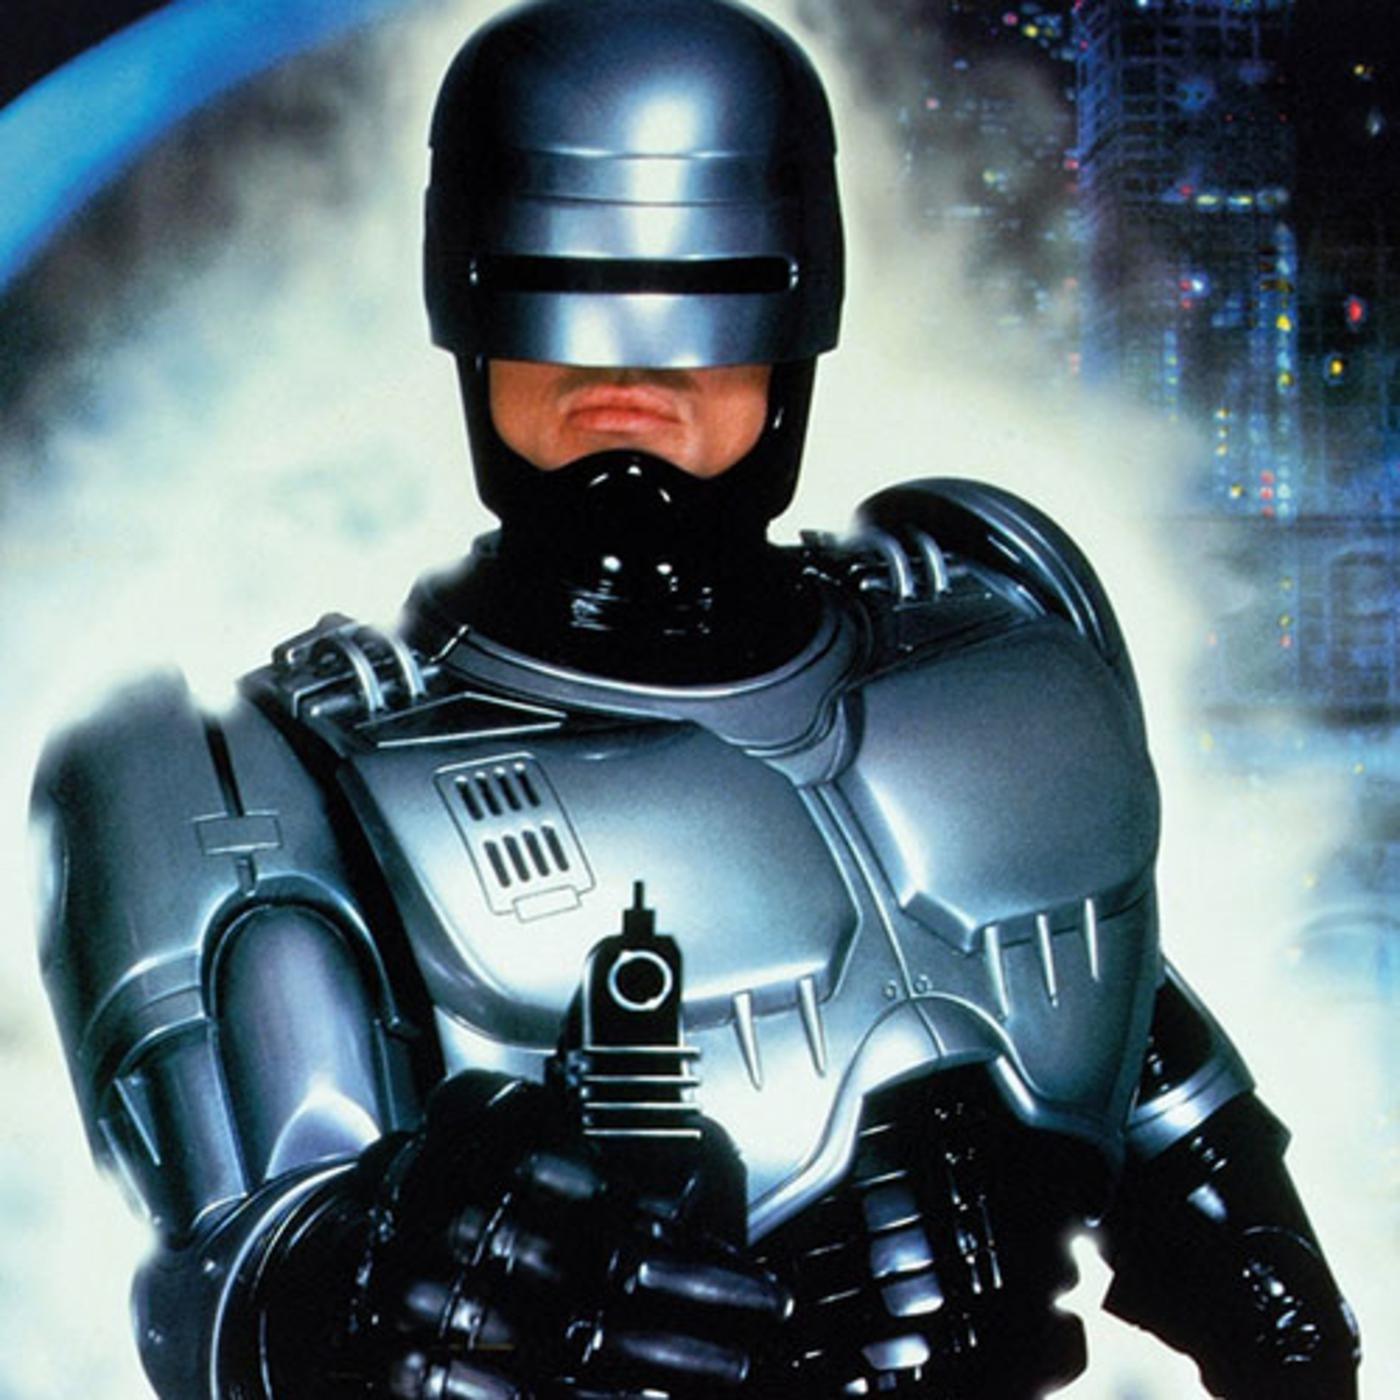 GVN Presents: They Called This a Movie - RoboCop (1987)